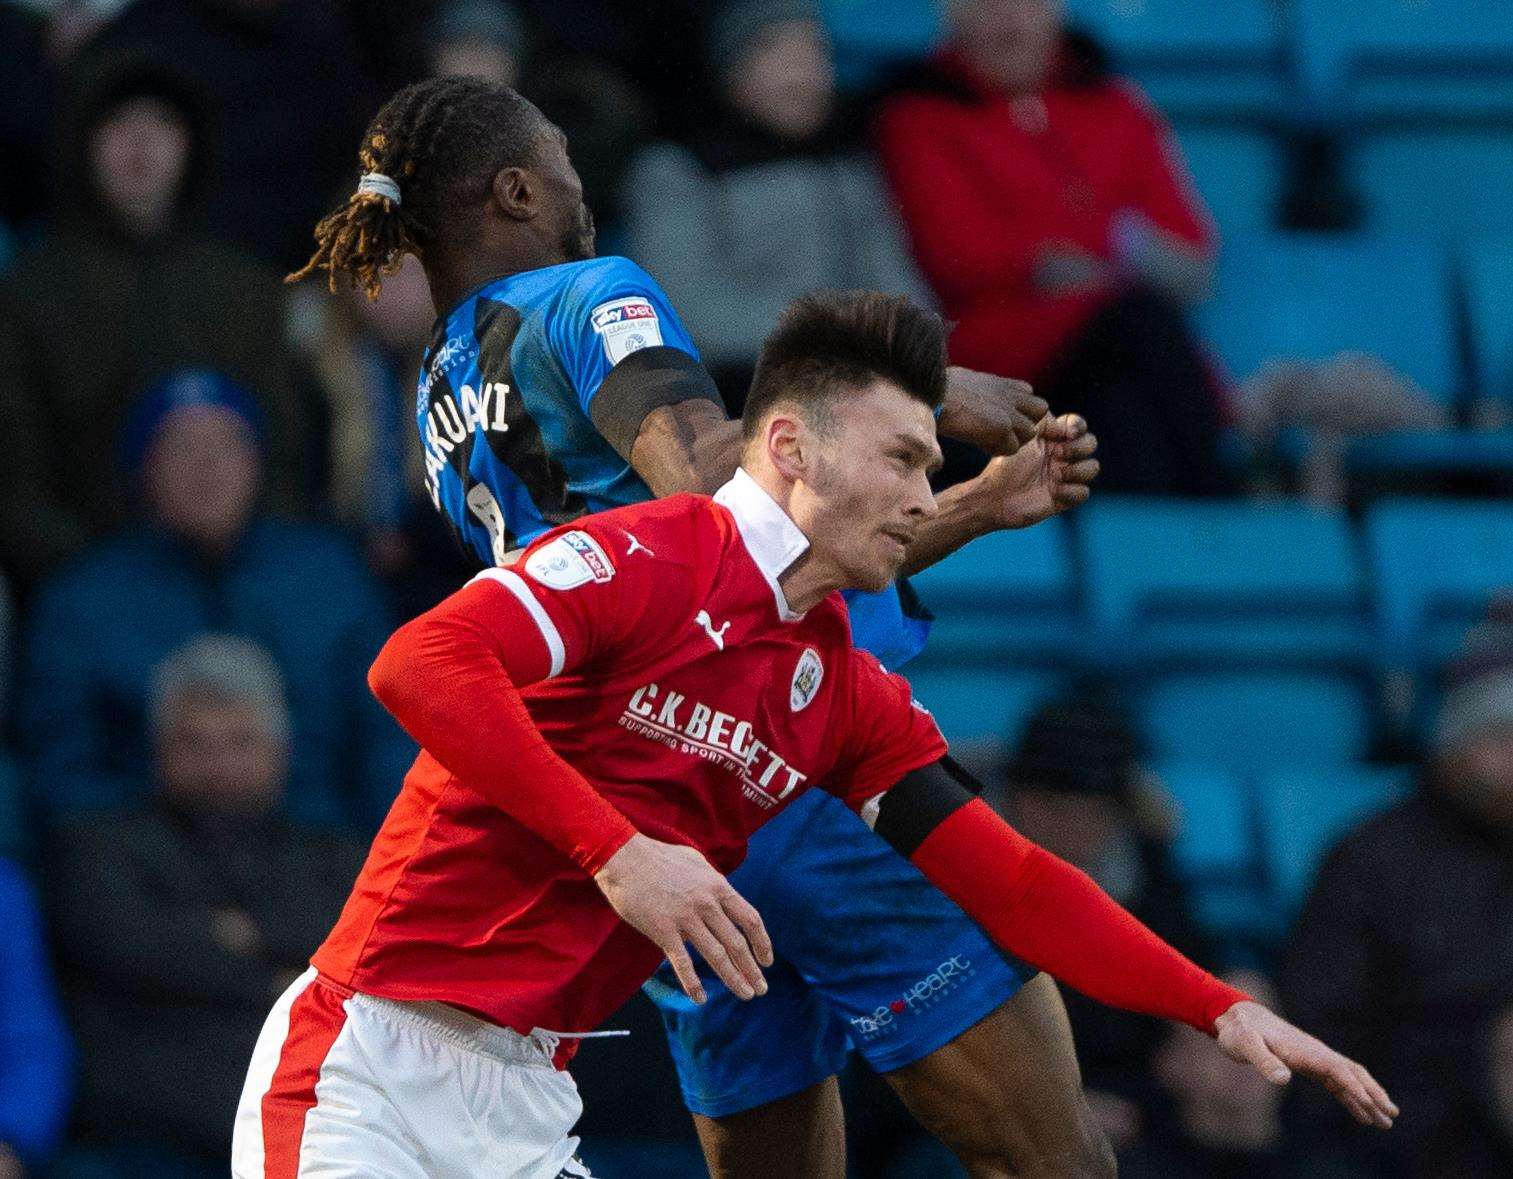 Gabriel Zakuani landed awkwardly after a challenge with Keiffer Moore on Saturday Picture: Ady Kerry